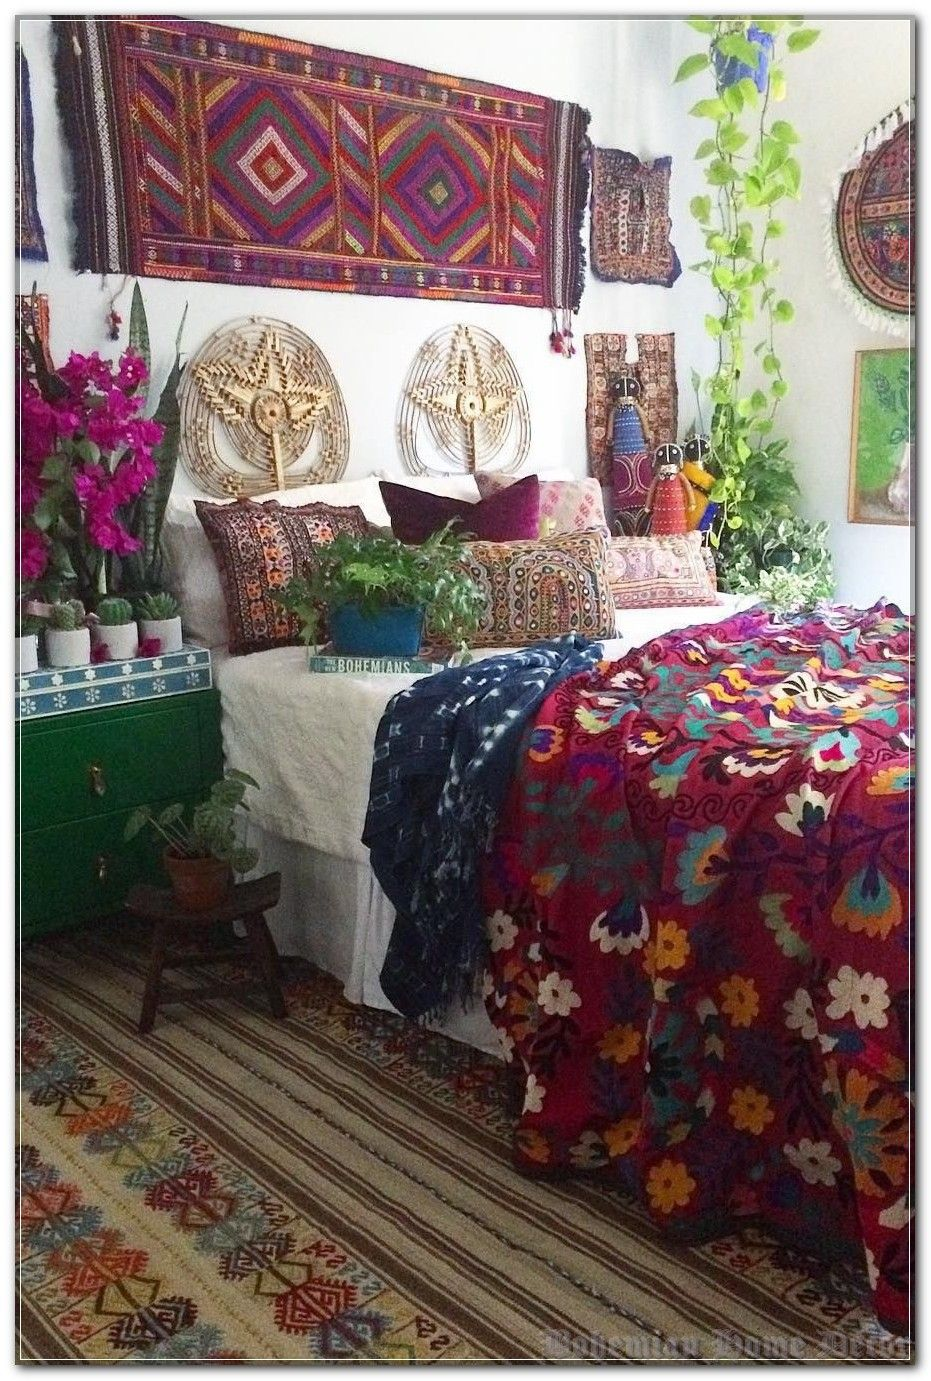 10 Things I Wish I Knew About Bohemian Home Decor